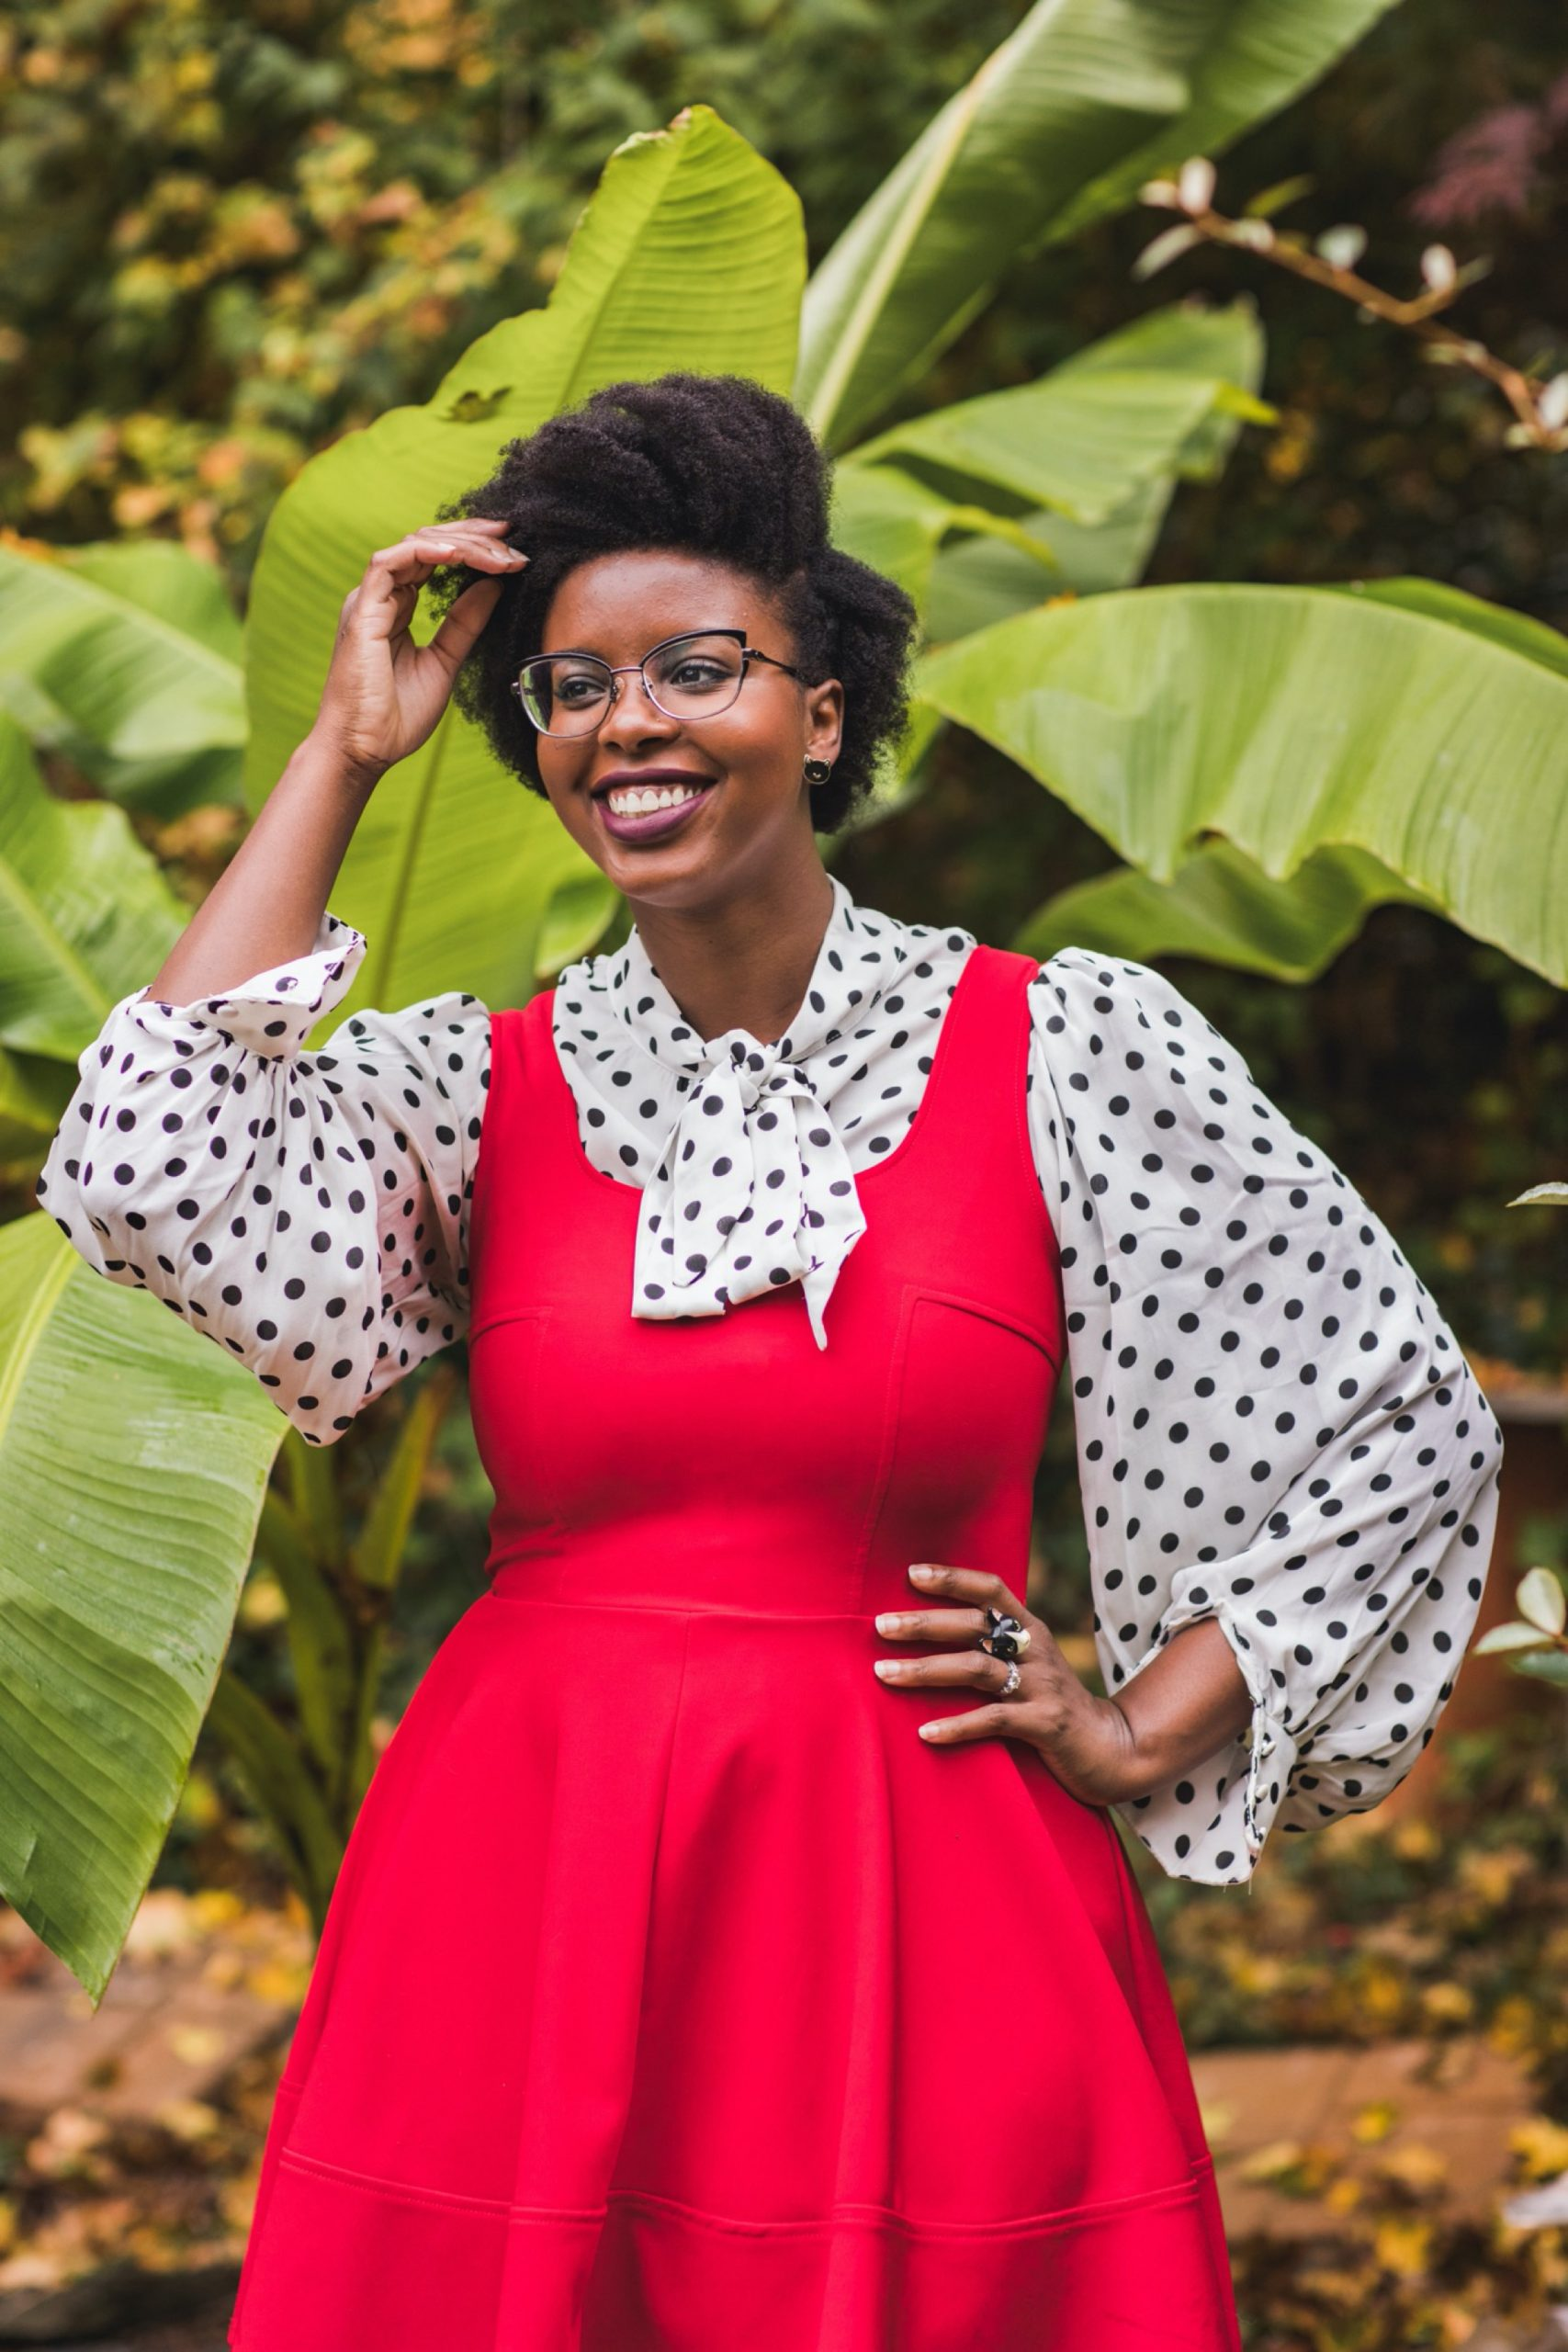 Philadelphia portrait photographer, branding session with Liz, a Black woman who wears a red dress with black and white polka dot blouse